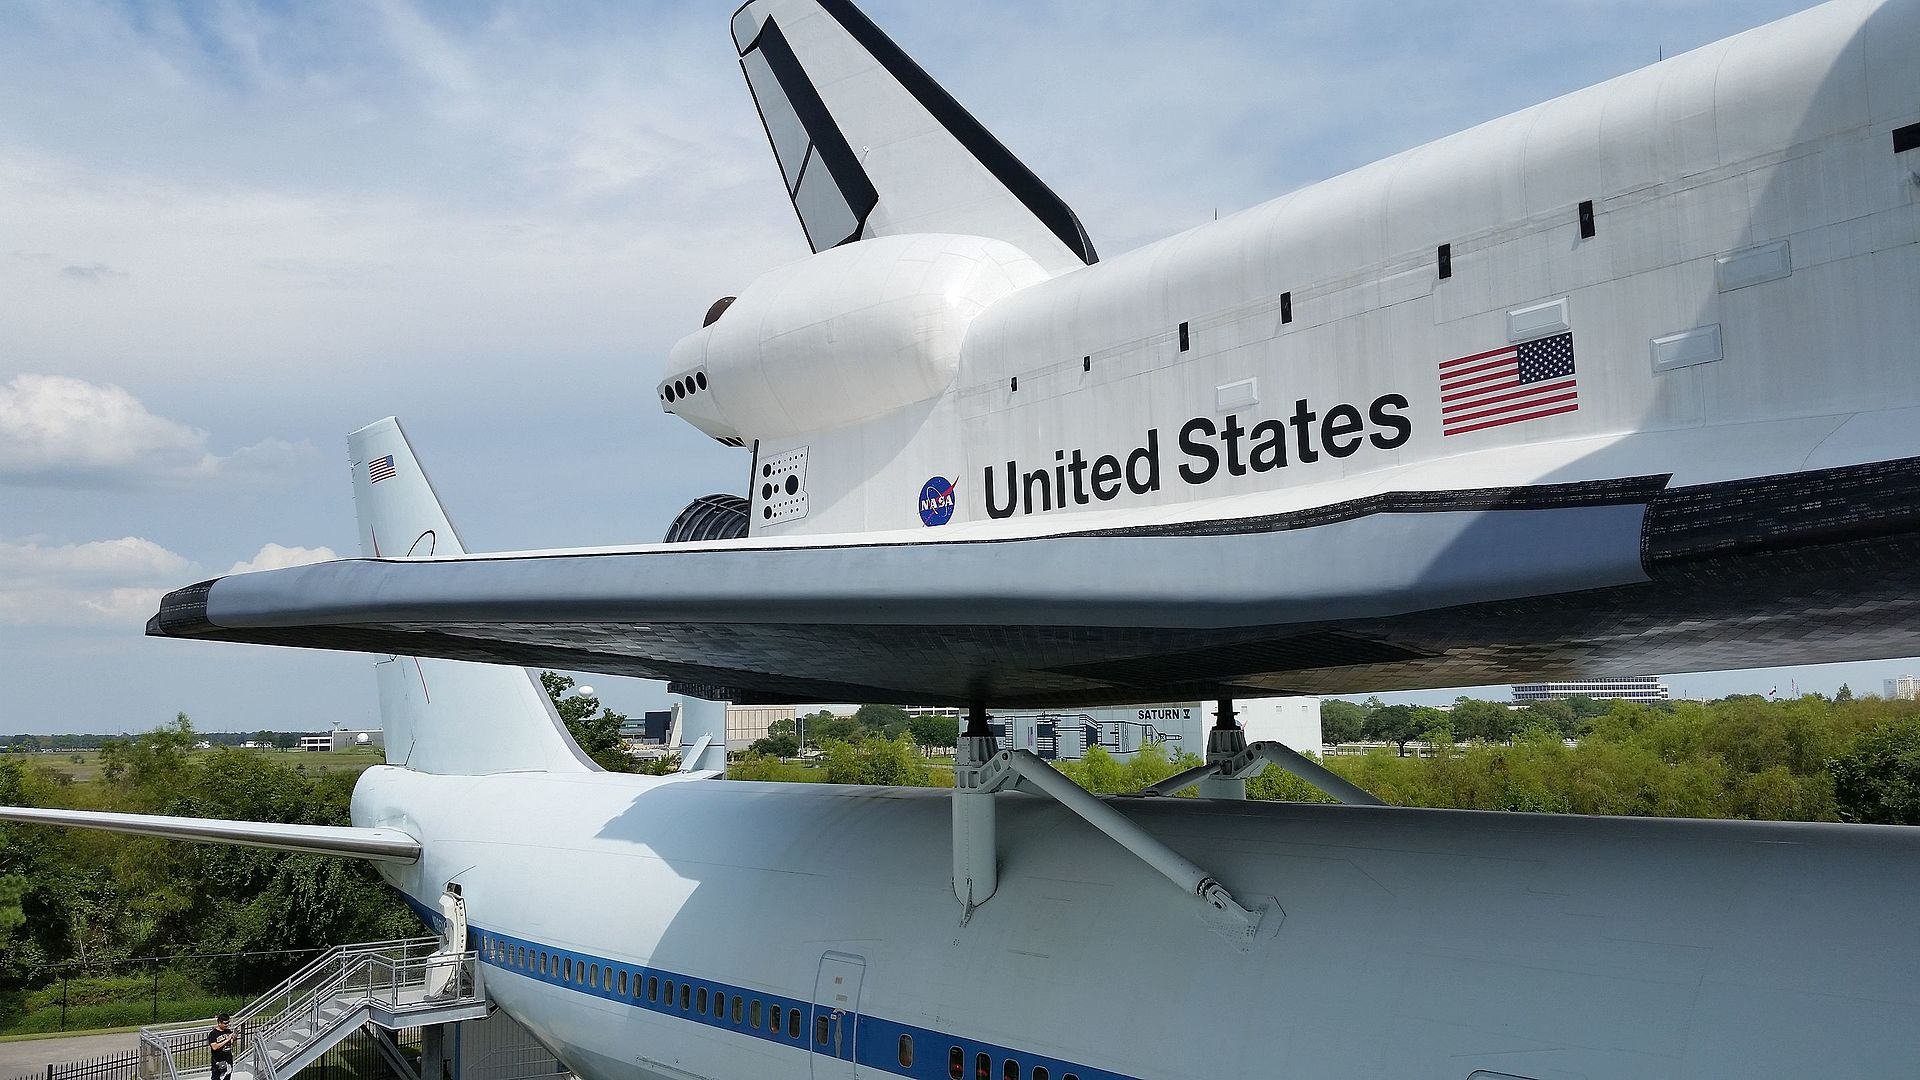 Nasa S Space Center Houston And City Sightseeing Tour